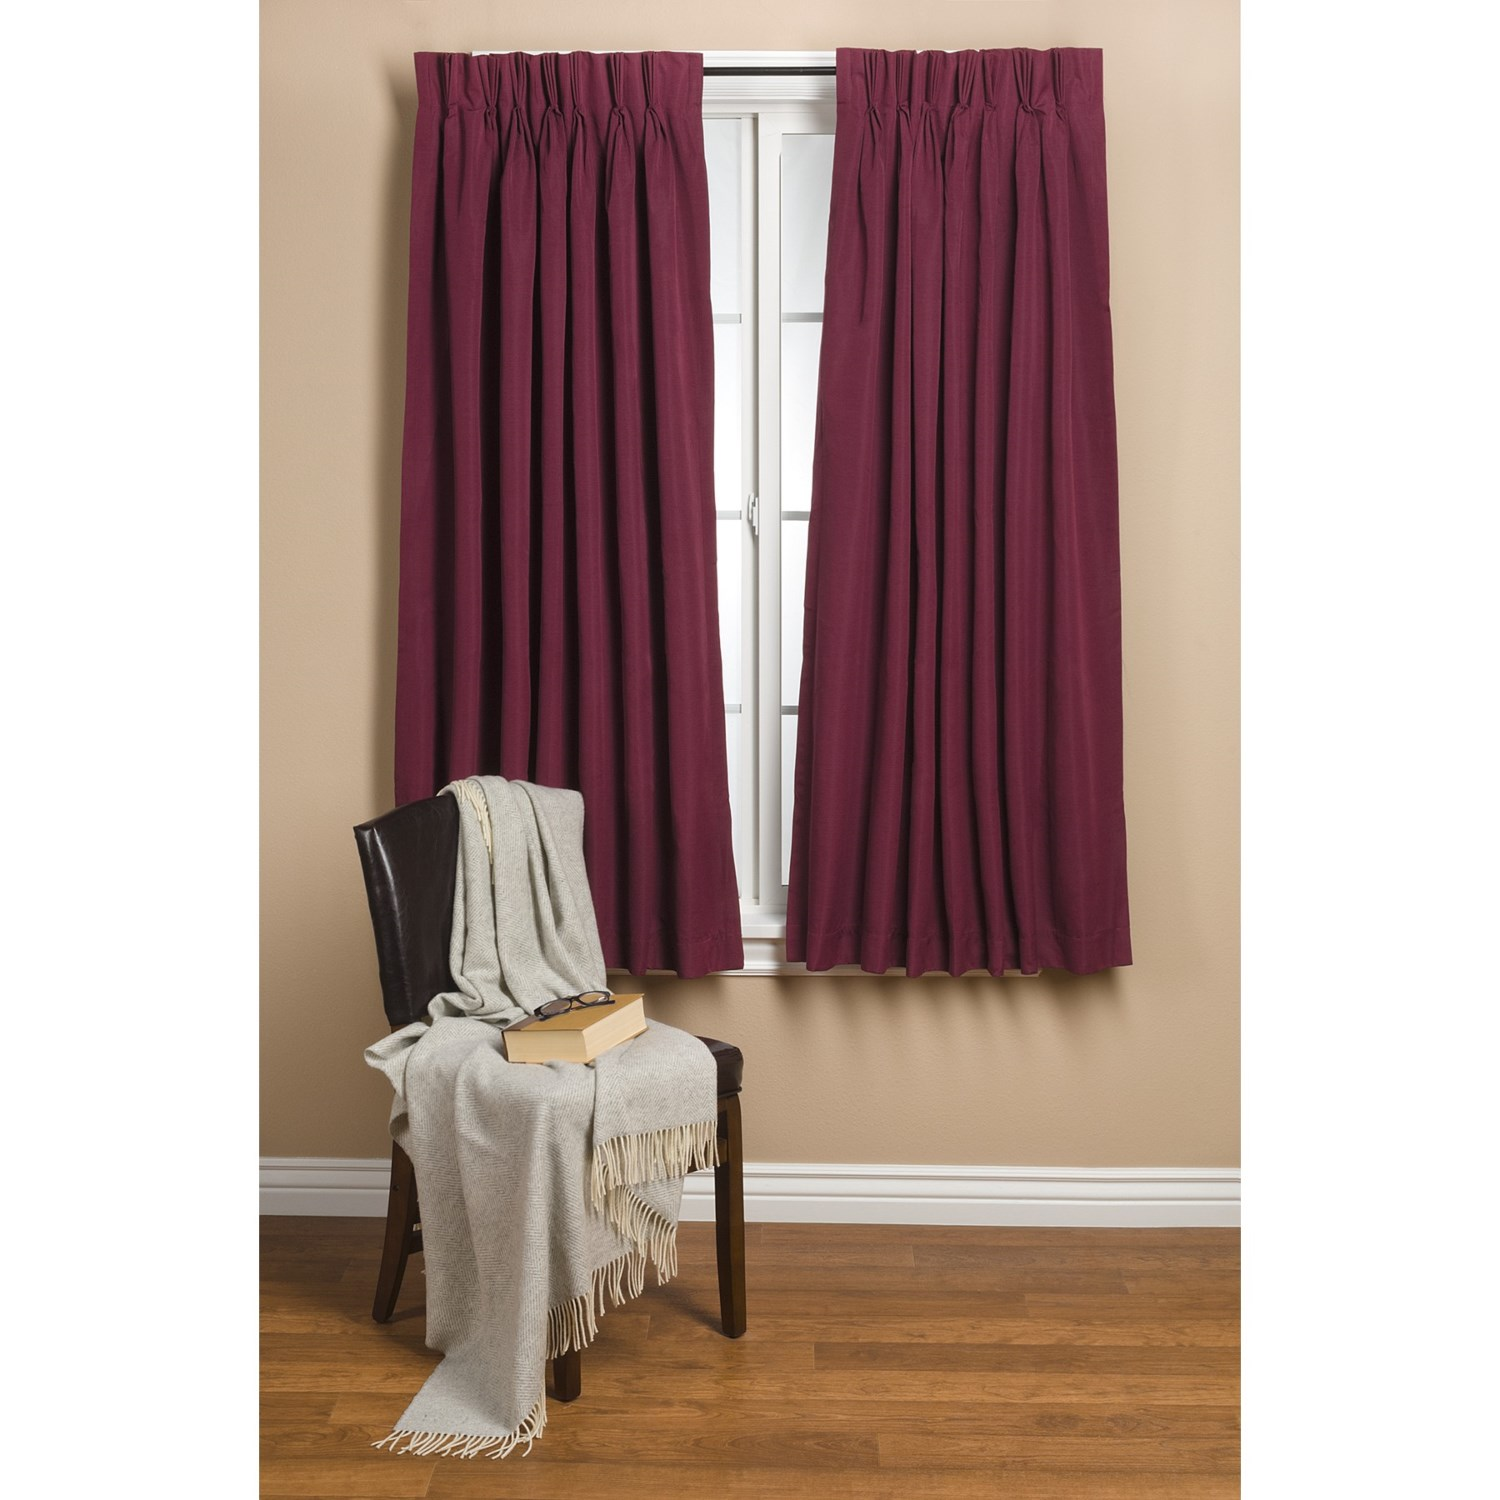 Commonwealth Home Fashions Hotel Chic Blackout Curtains 96x84 Pinch Pleat In Burgundy